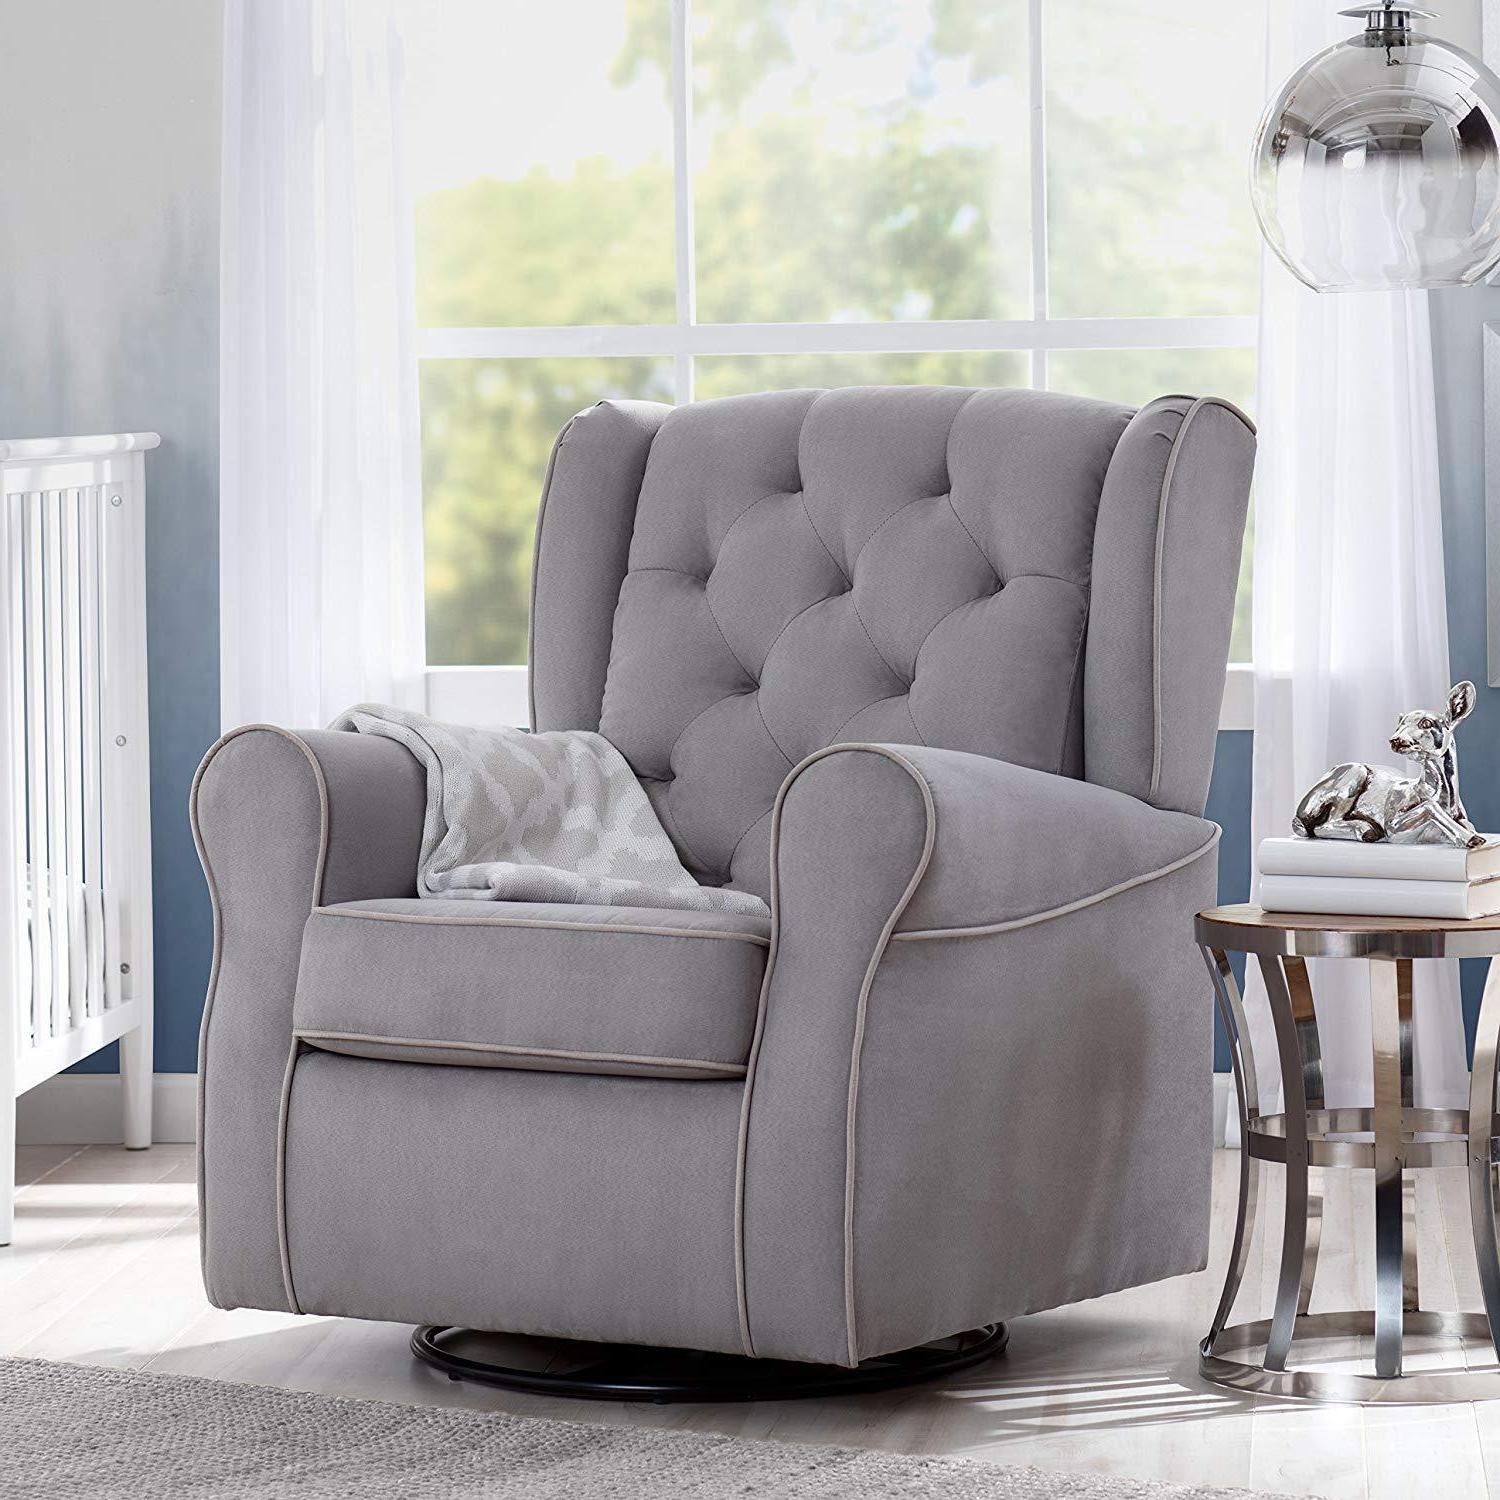 Delta Emerson Upholstered Dove Grey